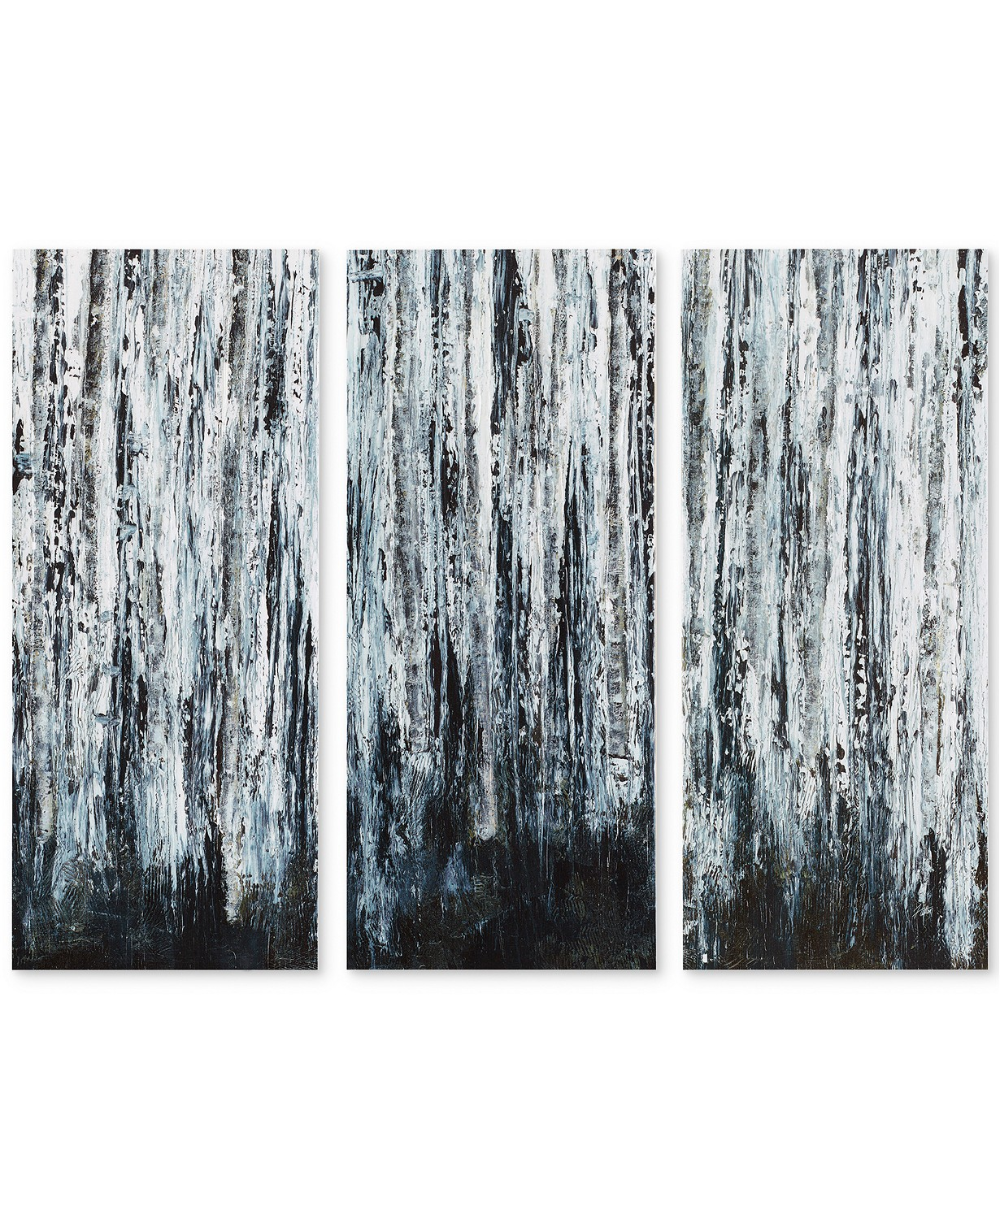 Jla Home Madison Park Birch Forest 3 Pc Gel Coated Canvas Print Set Reviews Wall Art Macy S In 2020 Madison Park Wall Art Print Sets